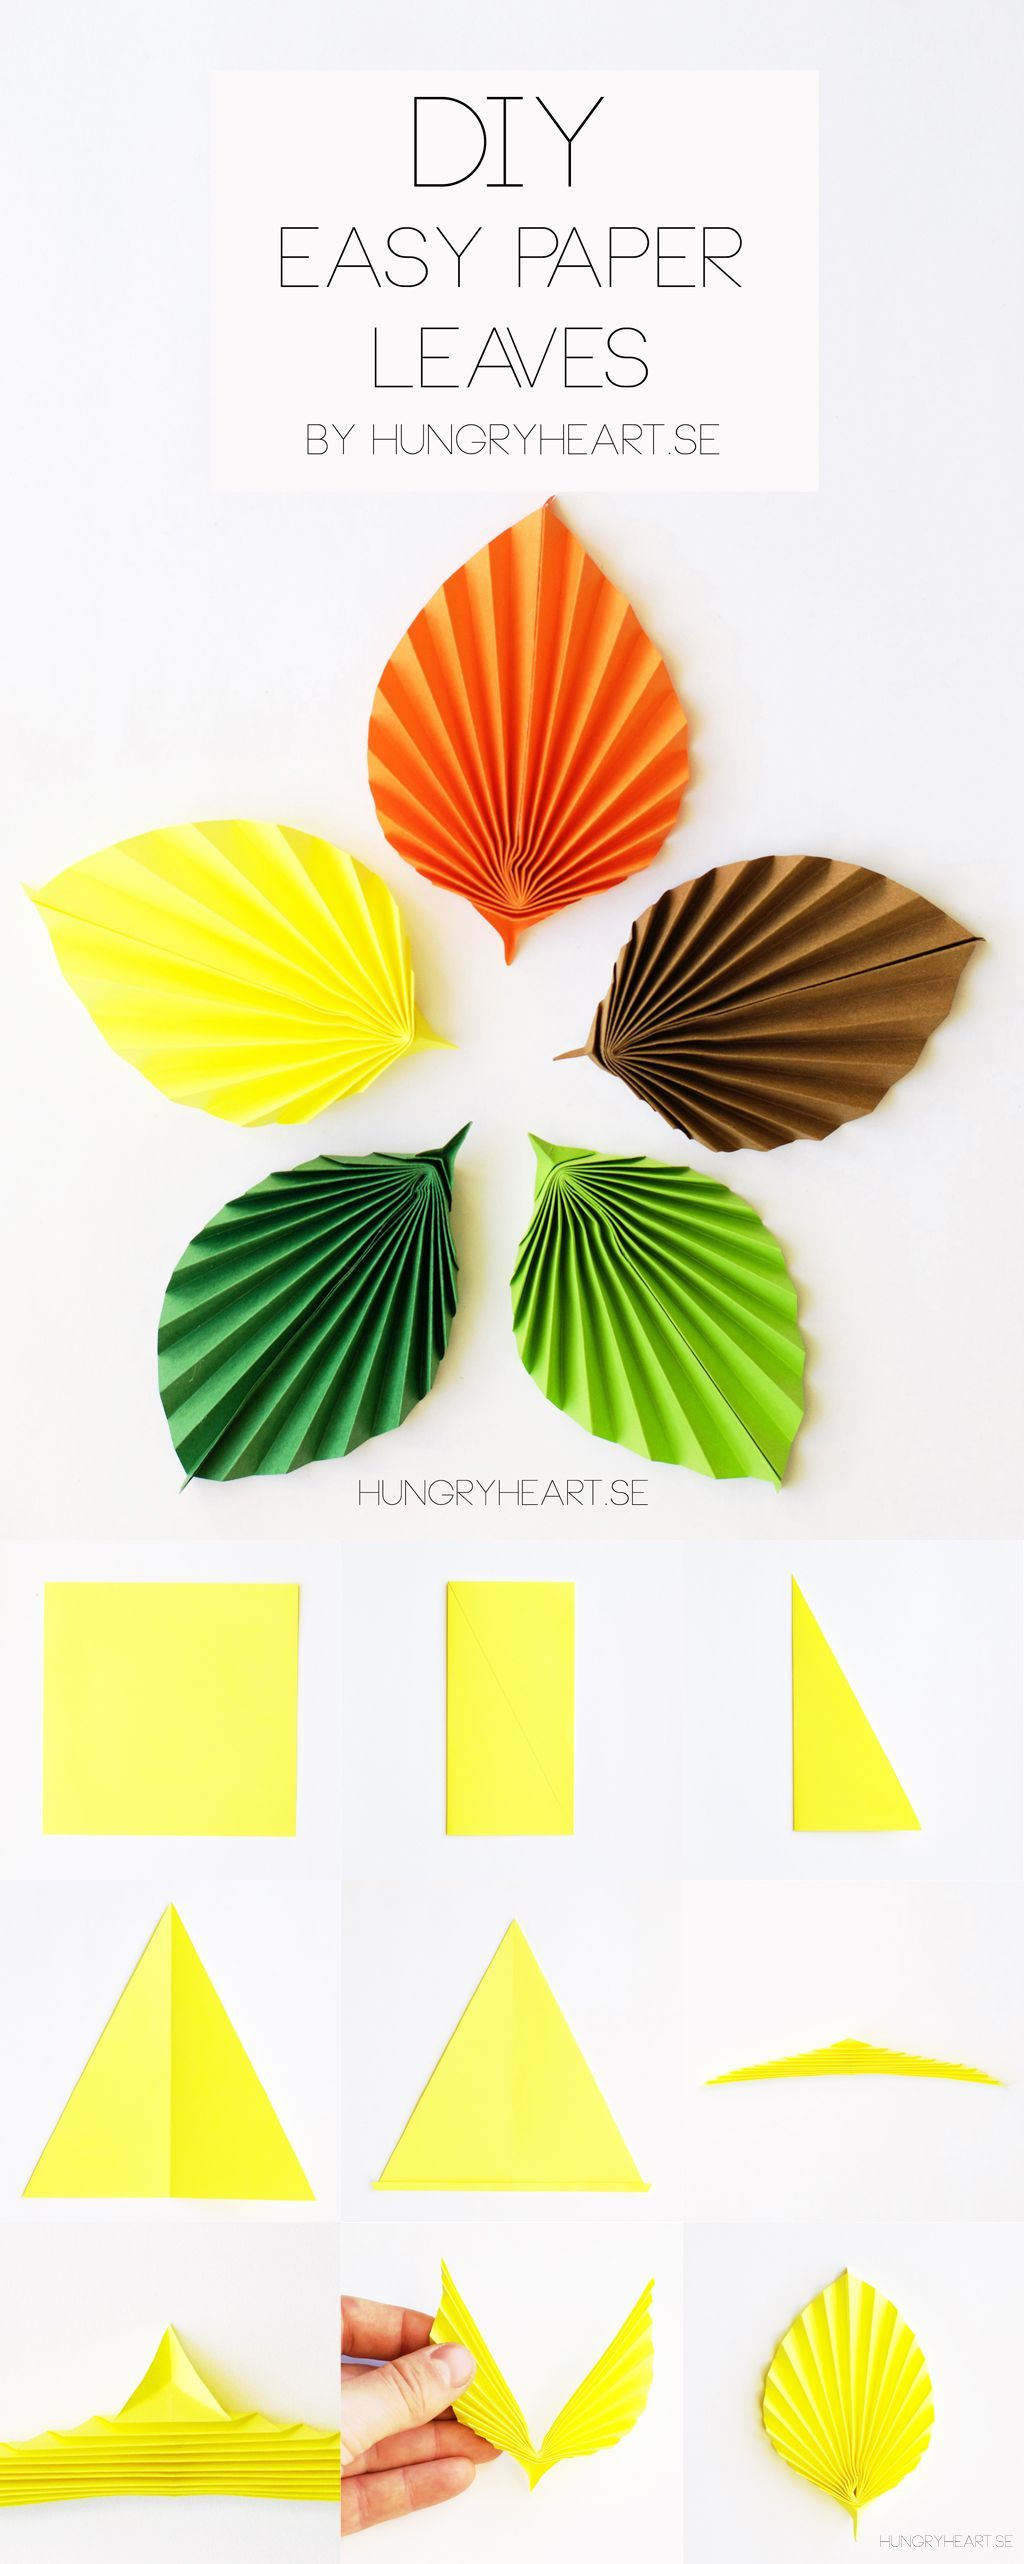 DIY Easy Paper Leaves Tutorial | Hungriges Herz - DIY Papier Blog #easypaperflowers